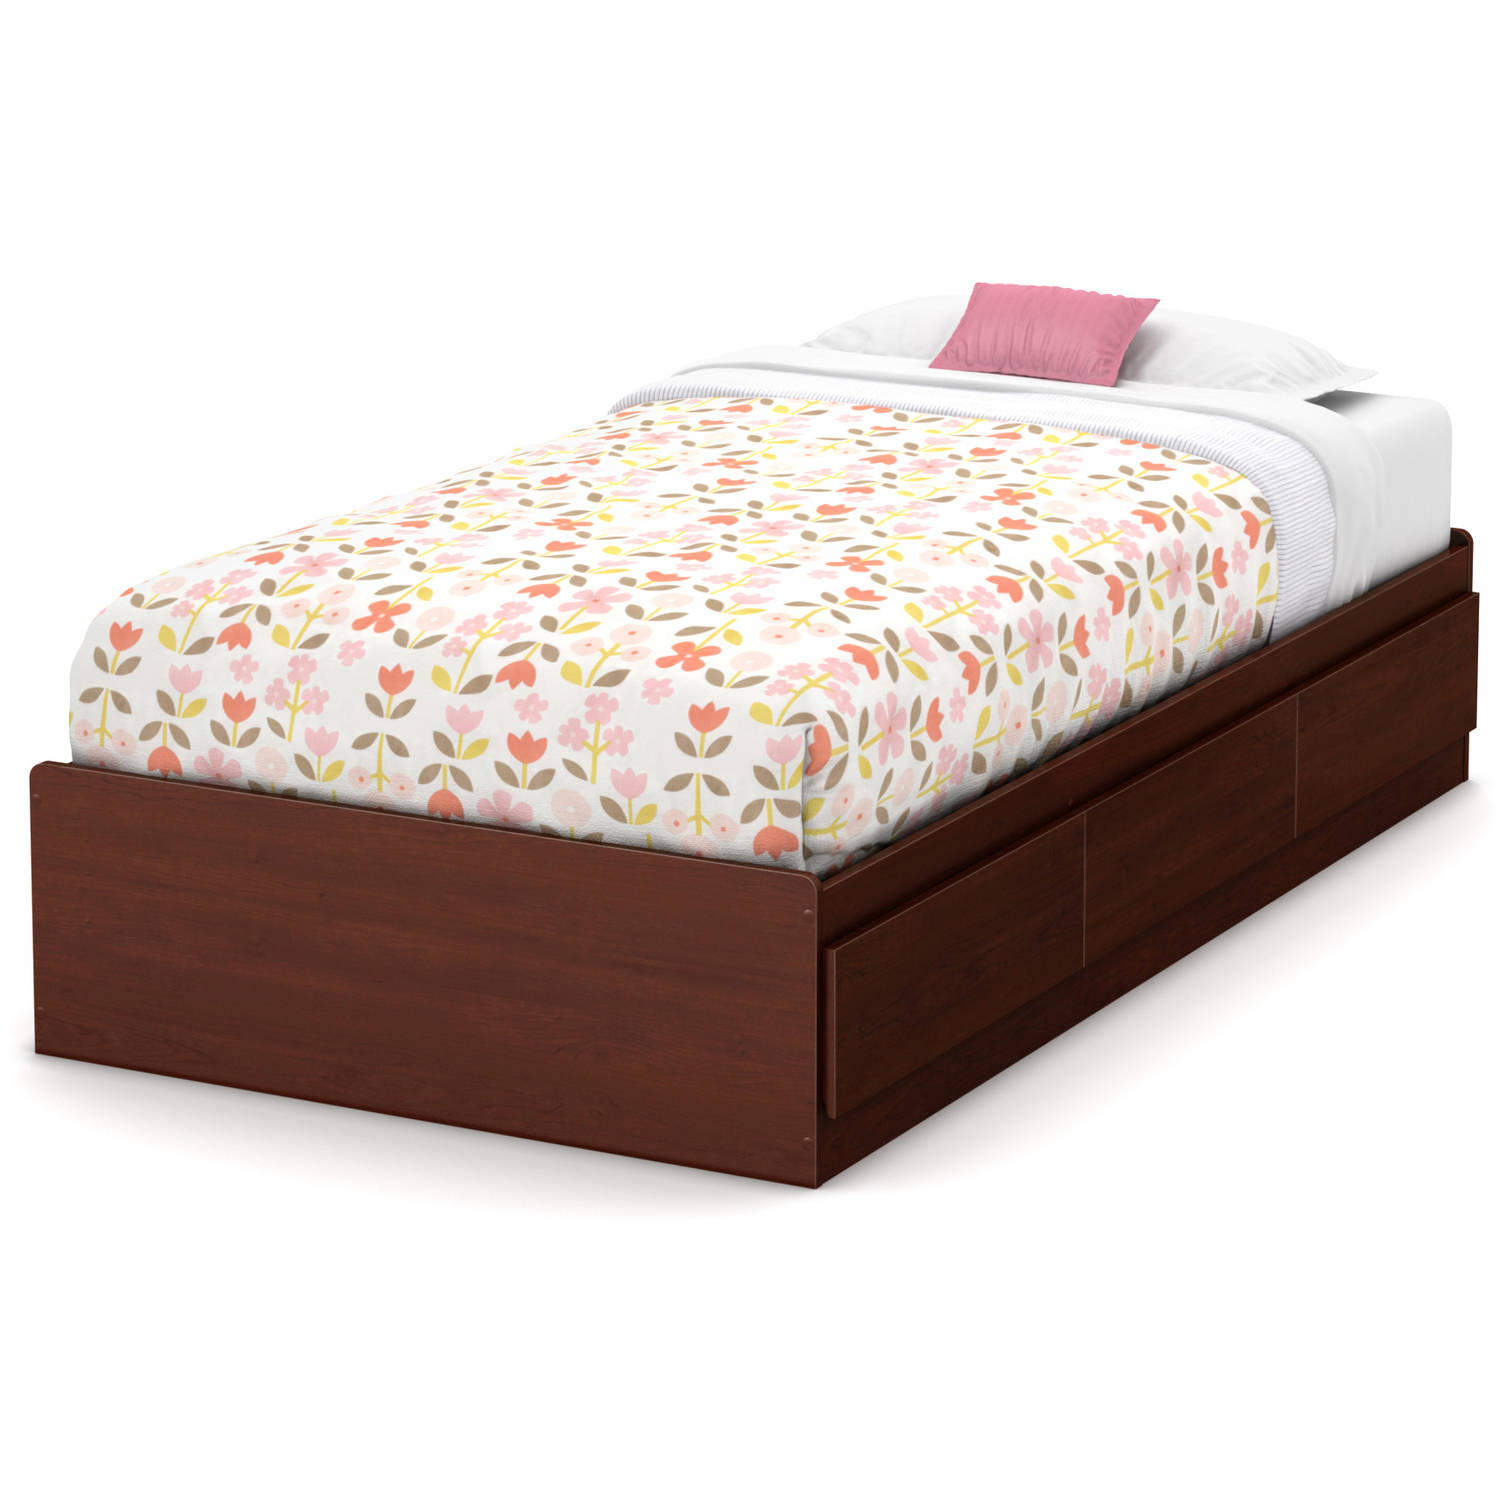 South Shore Summer Breeze Twin Mates Kids' Bed with 3 Drawers, Royal Cherry